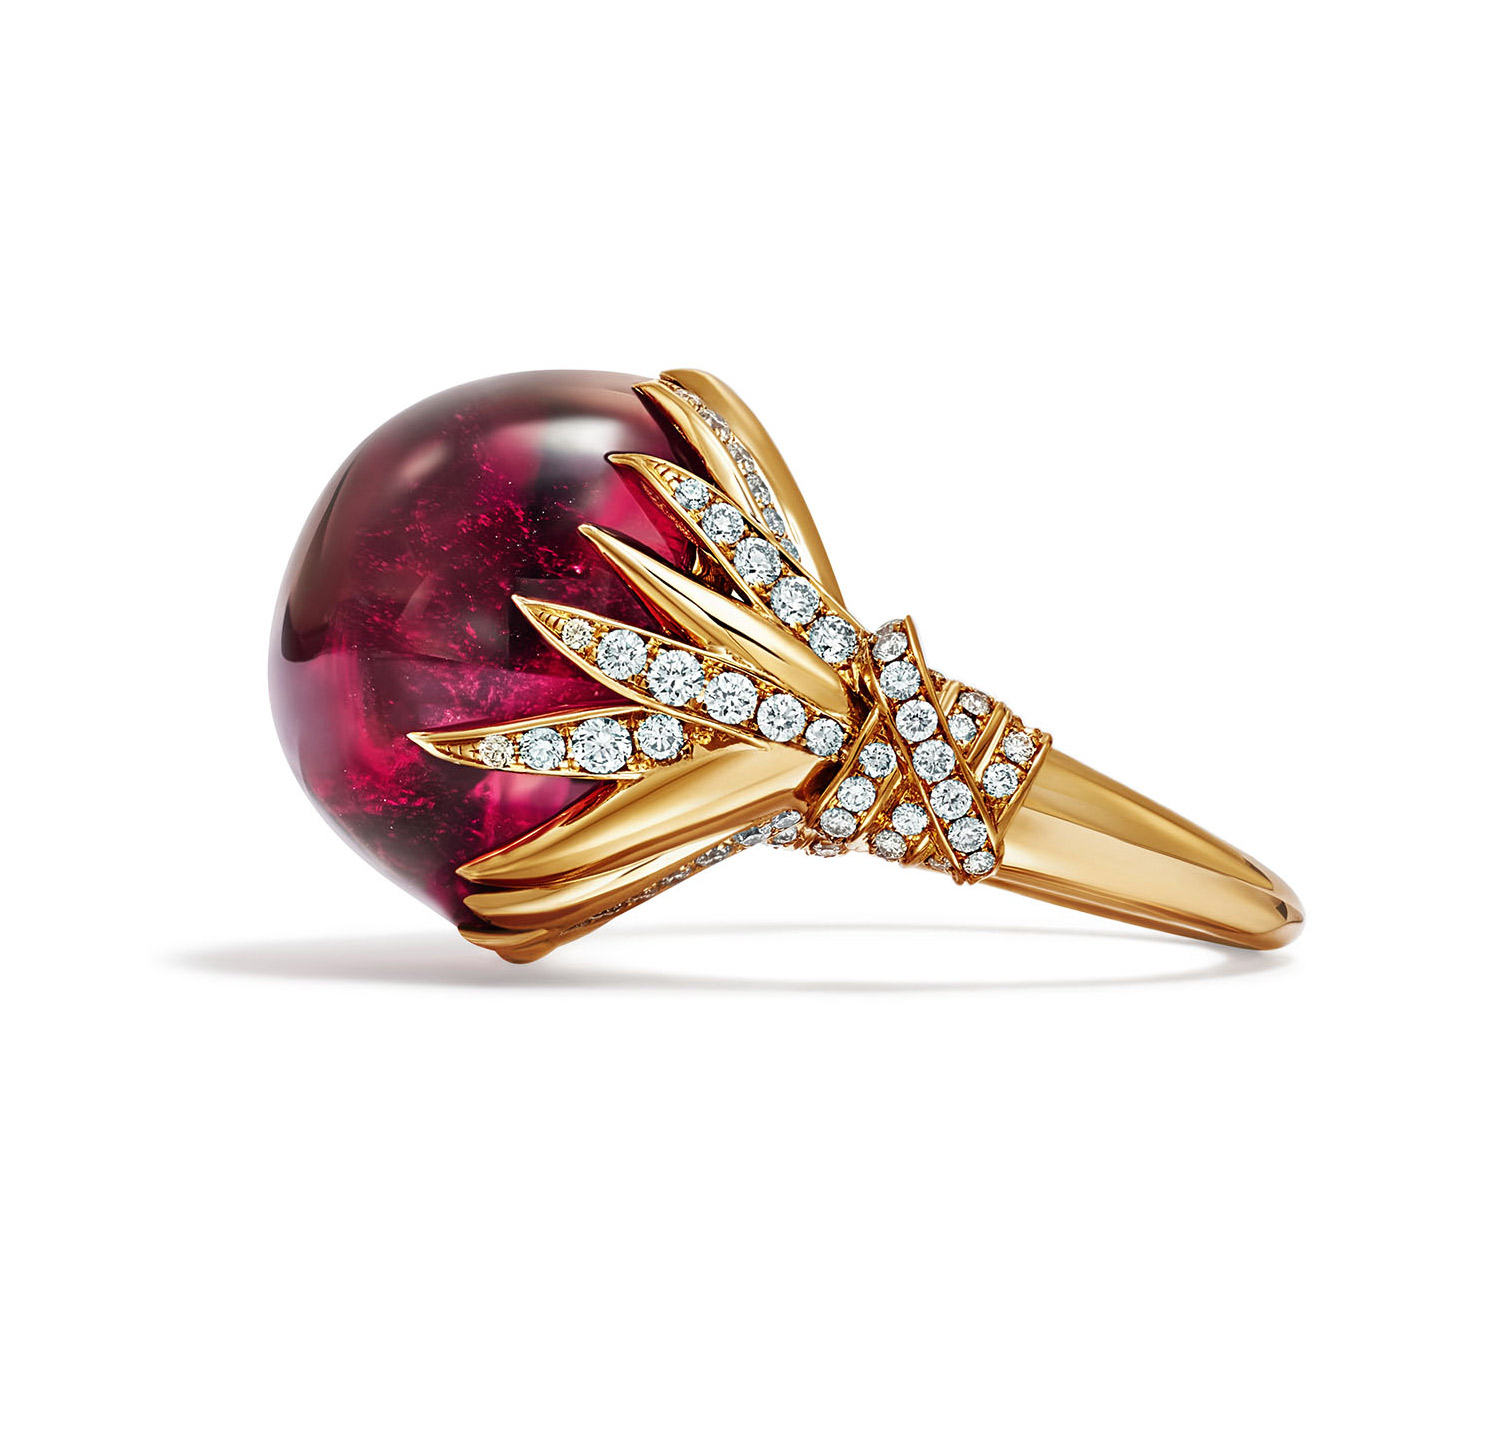 Indulge In The Collection Of The Finest Cabochon Cut